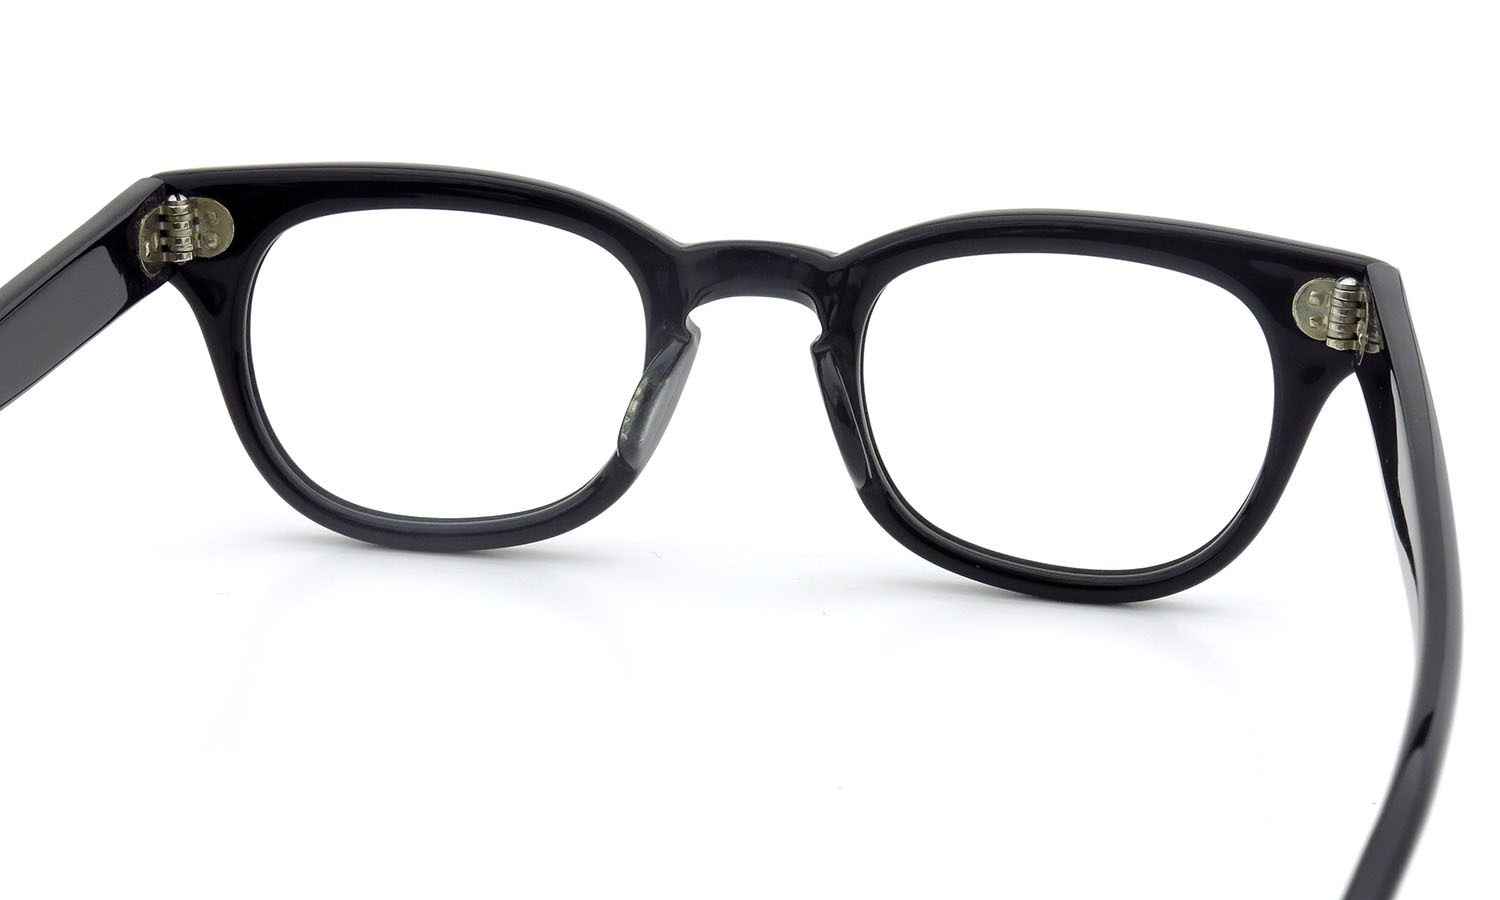 LIBERTY Optical 1950's vintage メガネ 9-PAR BLACK 44-20 7